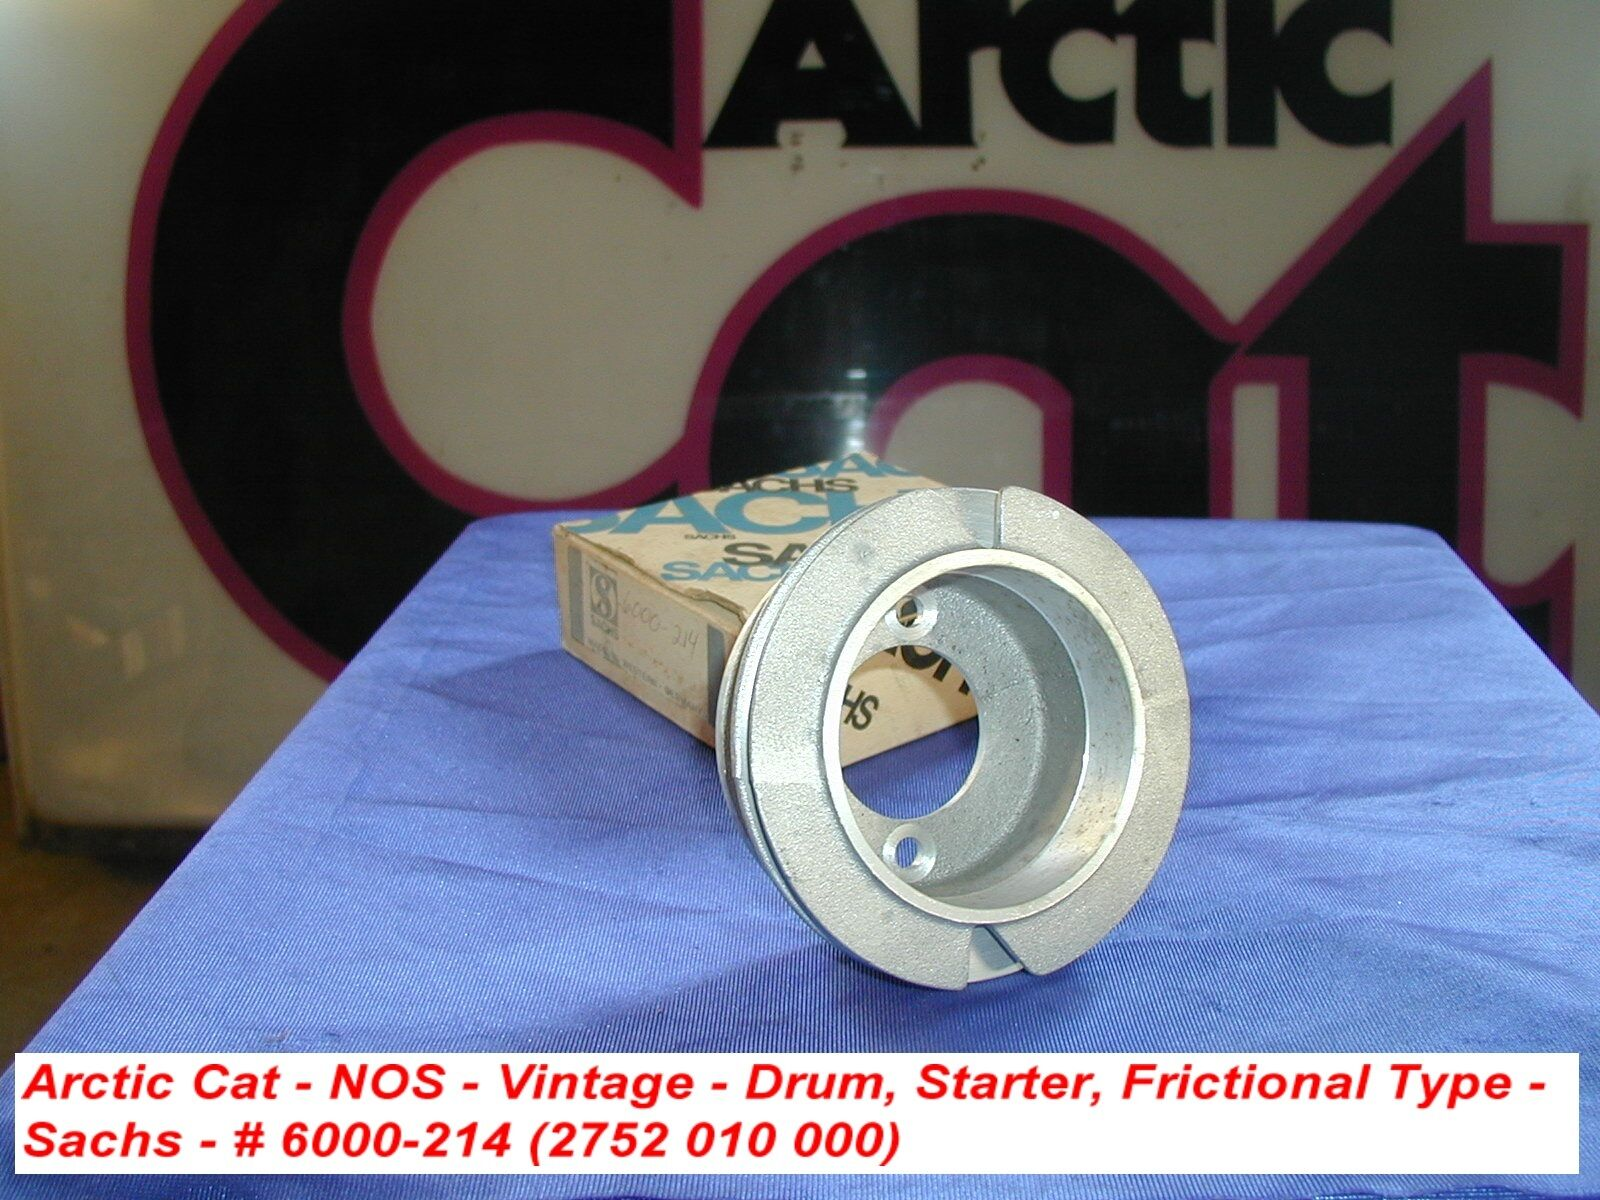 Arctic Cat Recoil Drum, Starter, Frictional Type Sachs VINTAGE